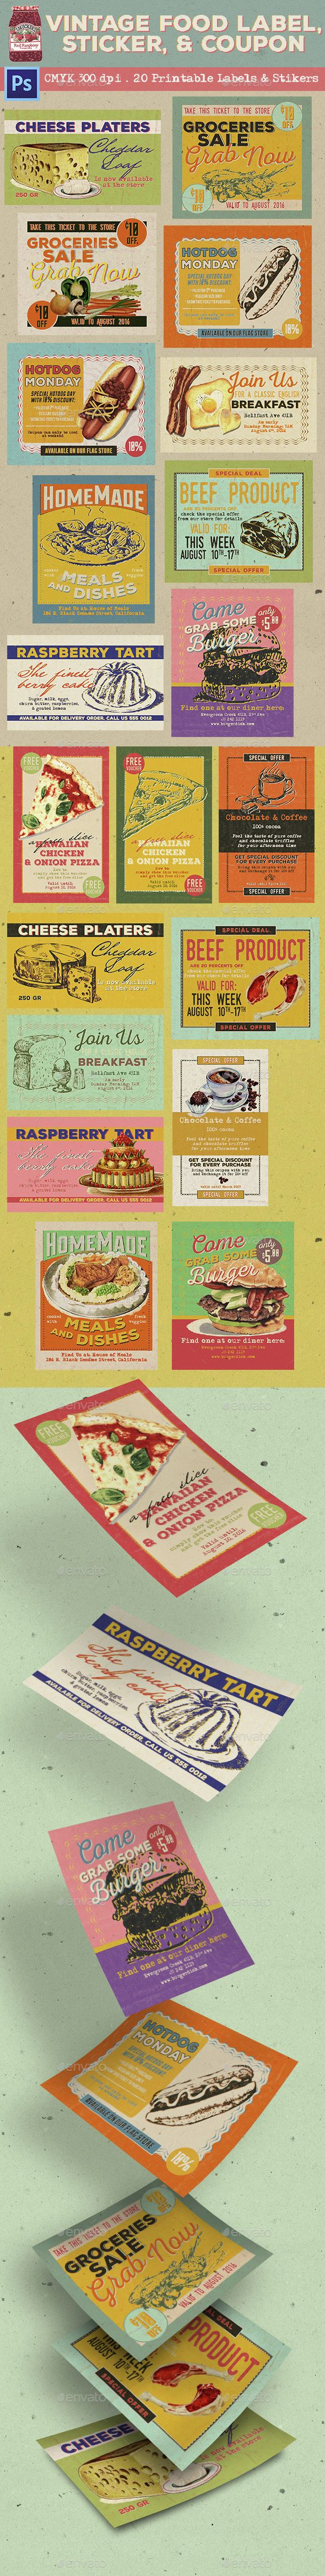 Vintage Food Labels, Stickers & Coupons - Loyalty Cards Cards & Invites